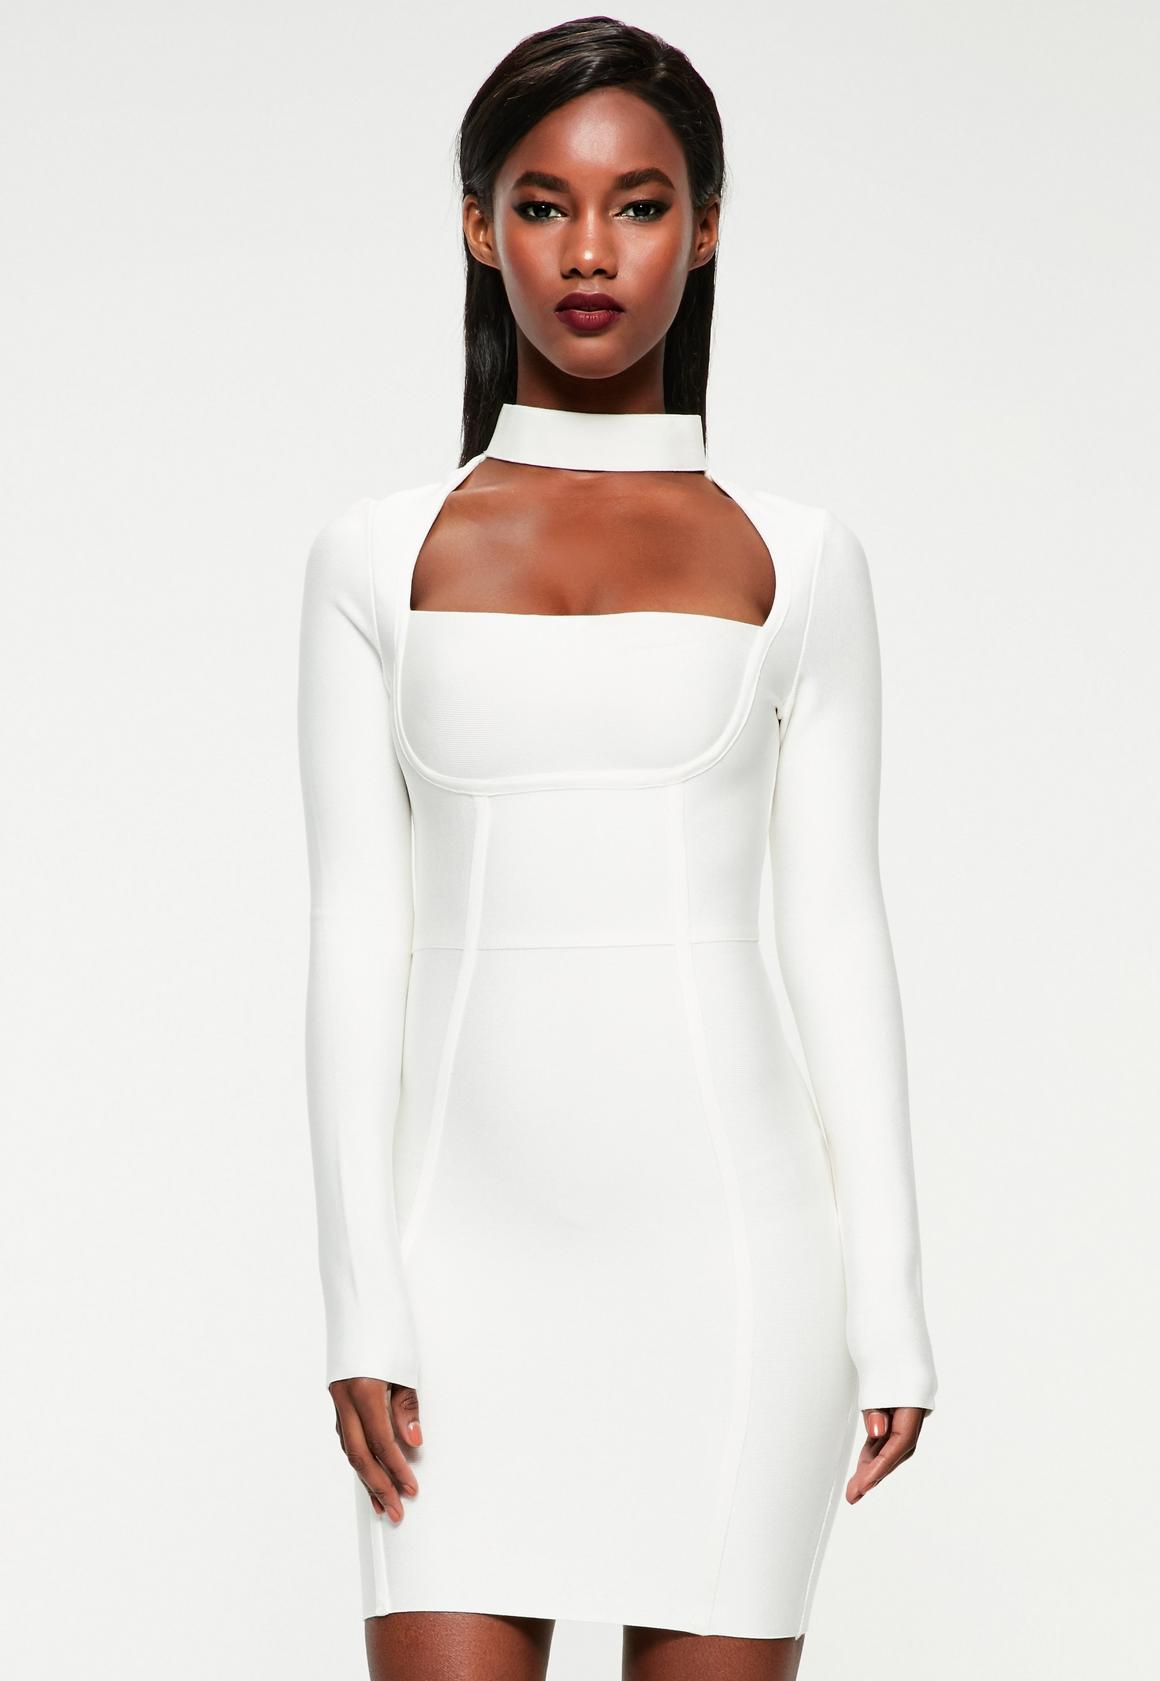 Bandage Dress & Long Sleeved Bandage Dresses | Missguided